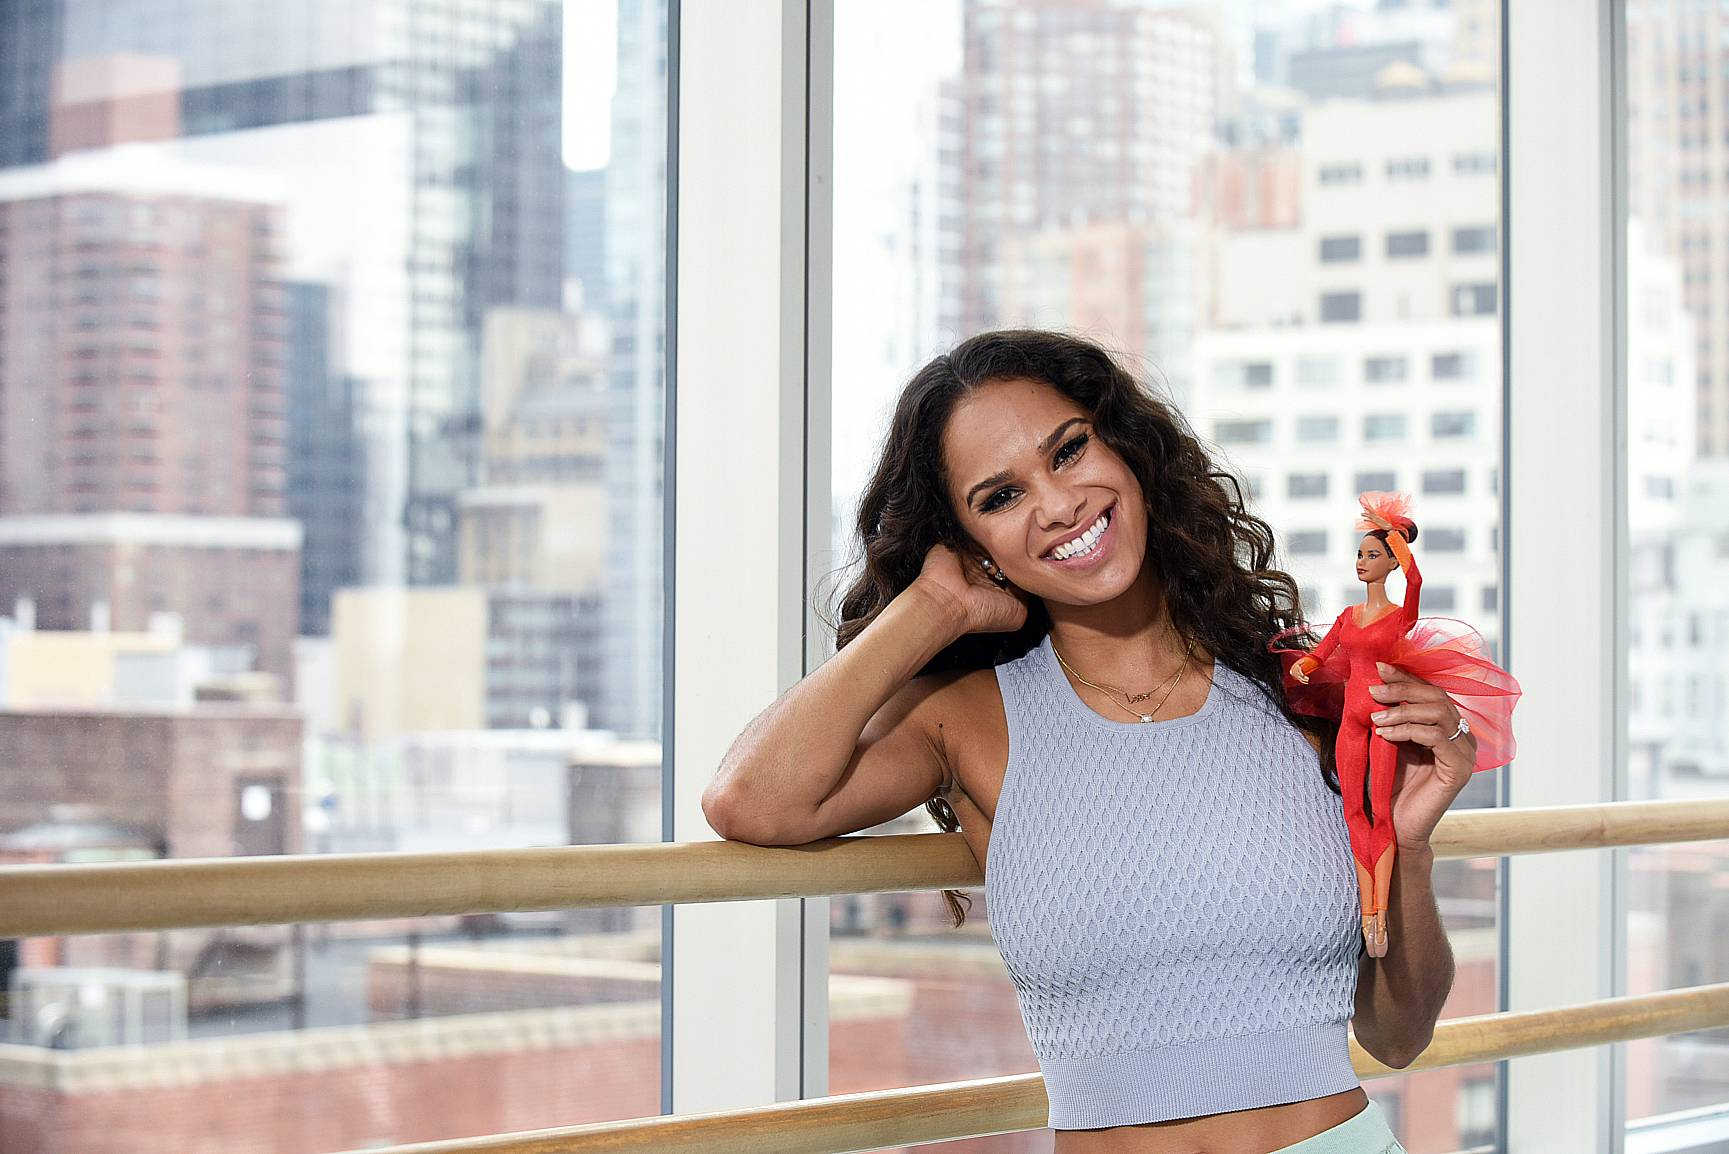 Misty Copeland Gets a Barbie Doll - Prima ballerina Misty Copeland is being honored for all of her #BlackGirlMagic in the form of a Barbie doll.(Photo: Courtesy of Mattel)